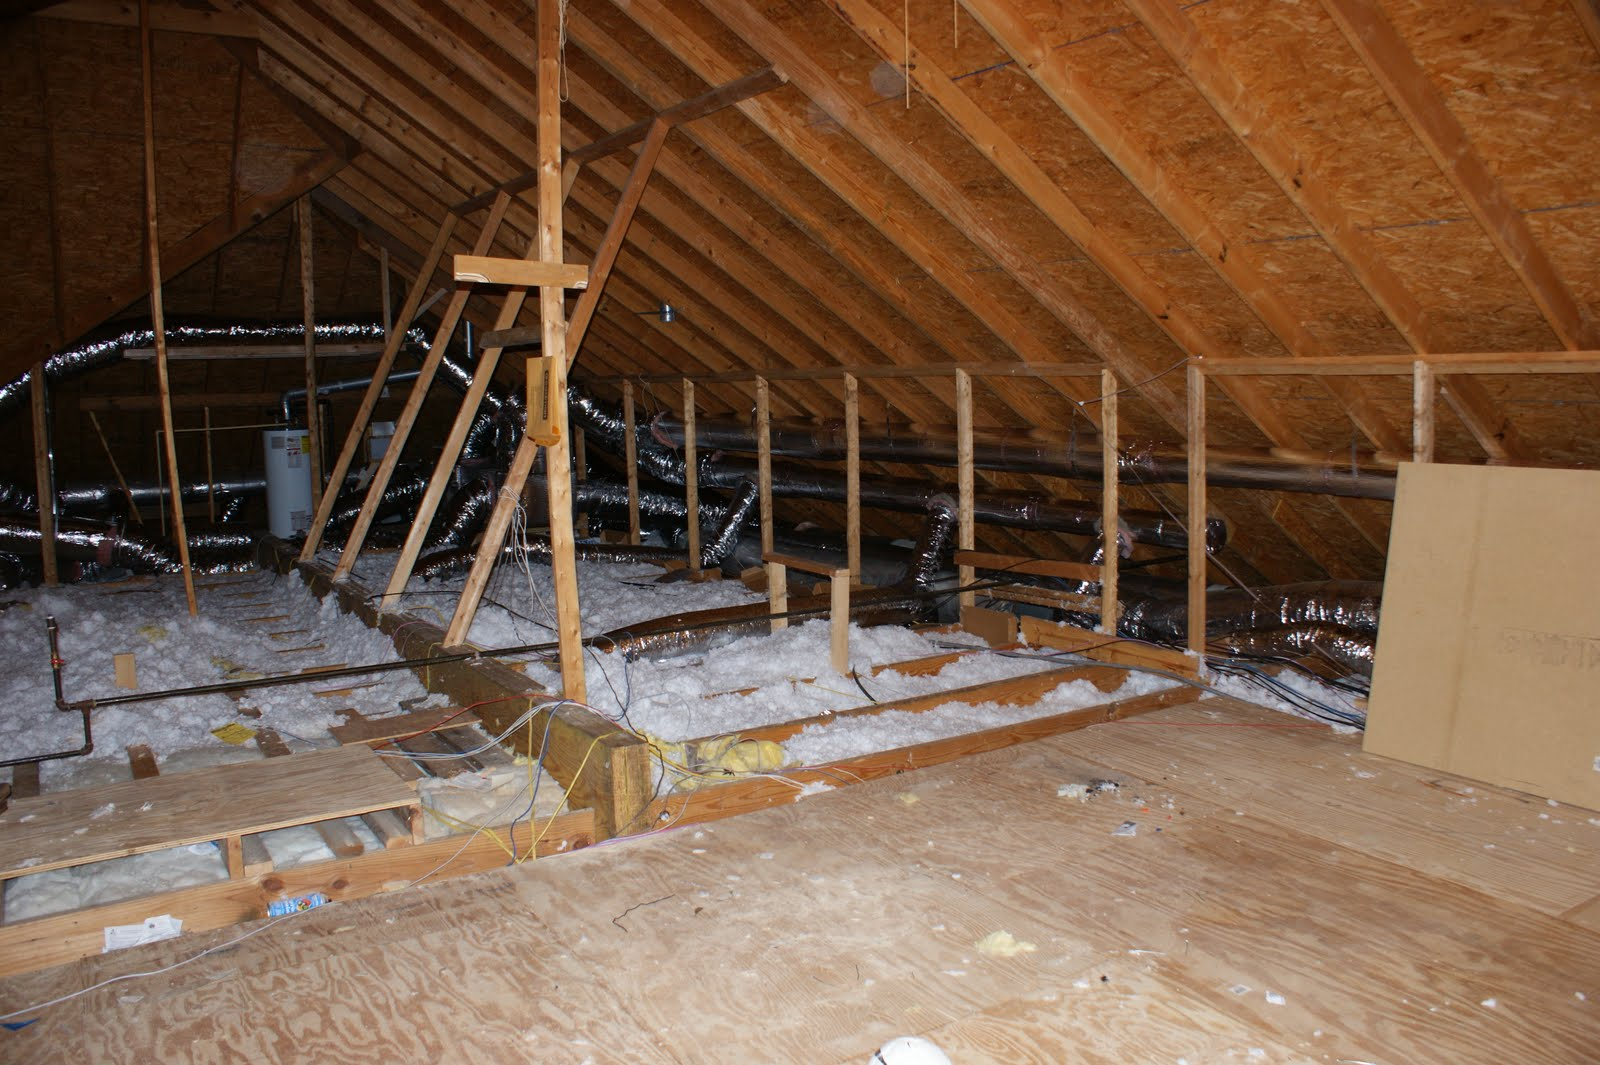 attic redo ideas - Answers on the Attic and The Social Network